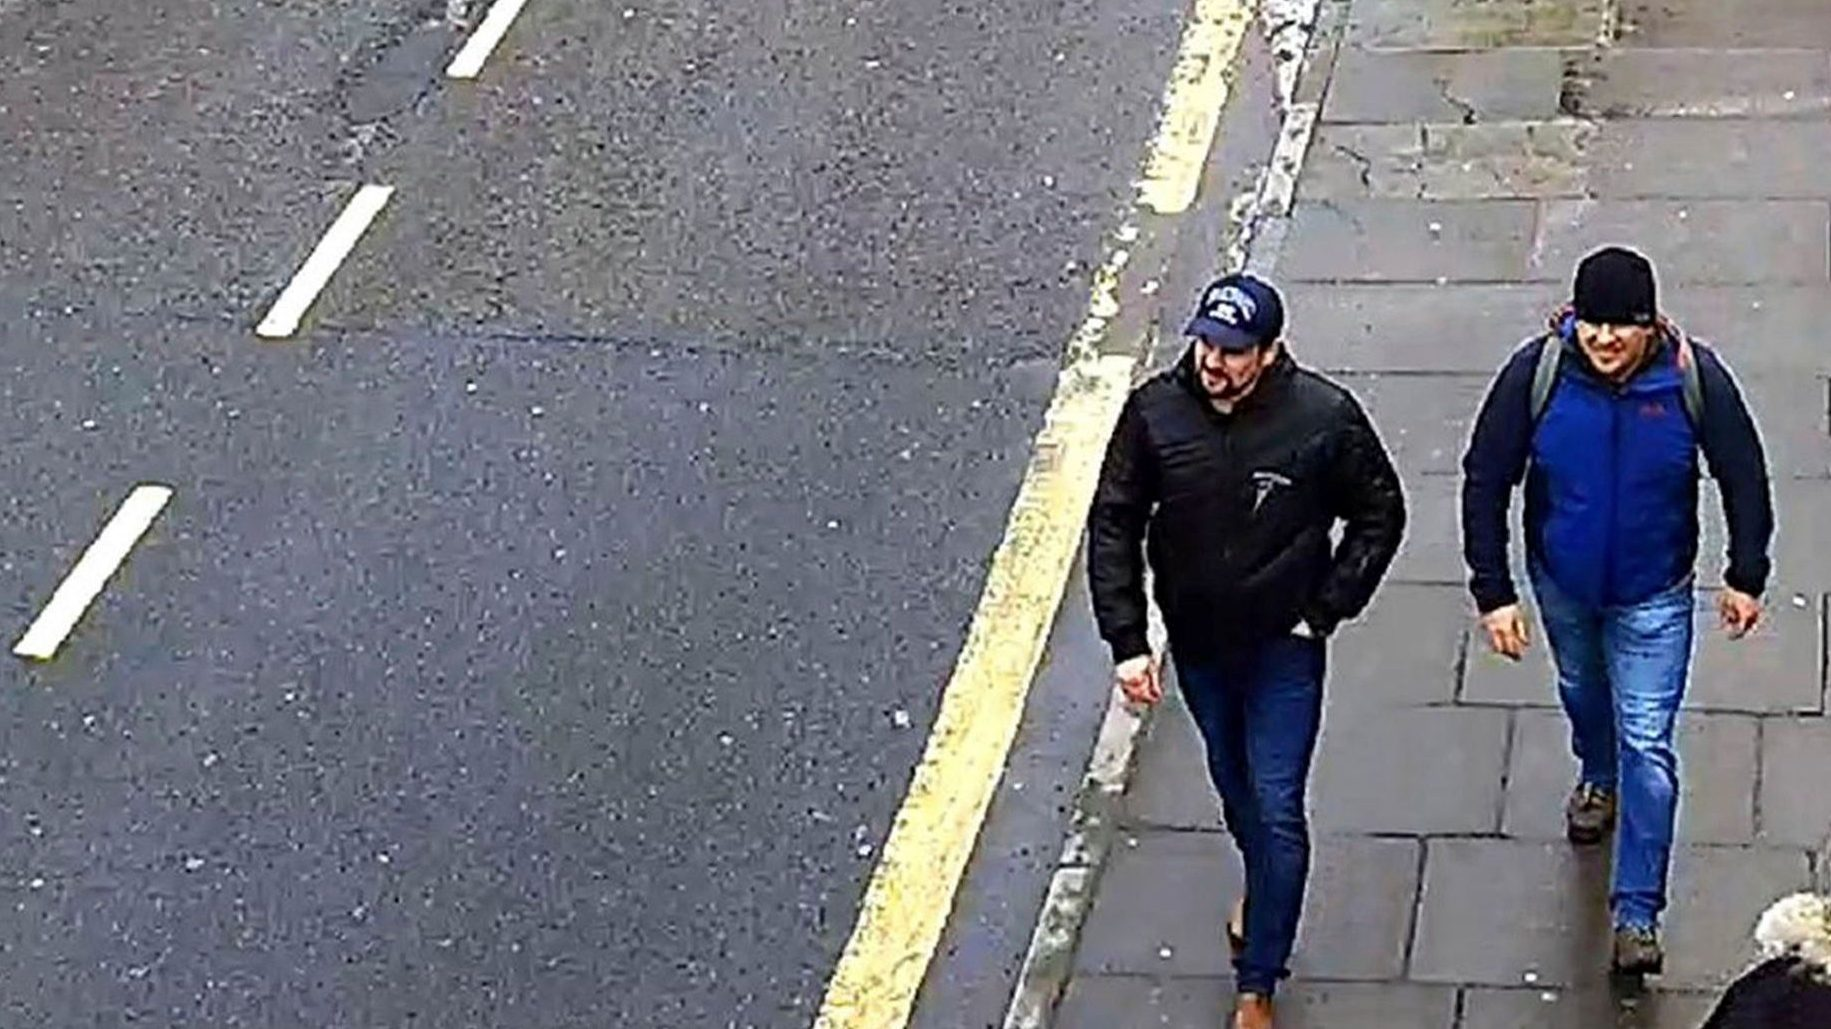 This still taken from CCTV and issued by the Metropolitan Police in London on Wednesday Sept. 5, 2018, shows Ruslan Boshirov and Alexander Petrov on Fisherton Road, Salisbury, England on March 4, 2018.